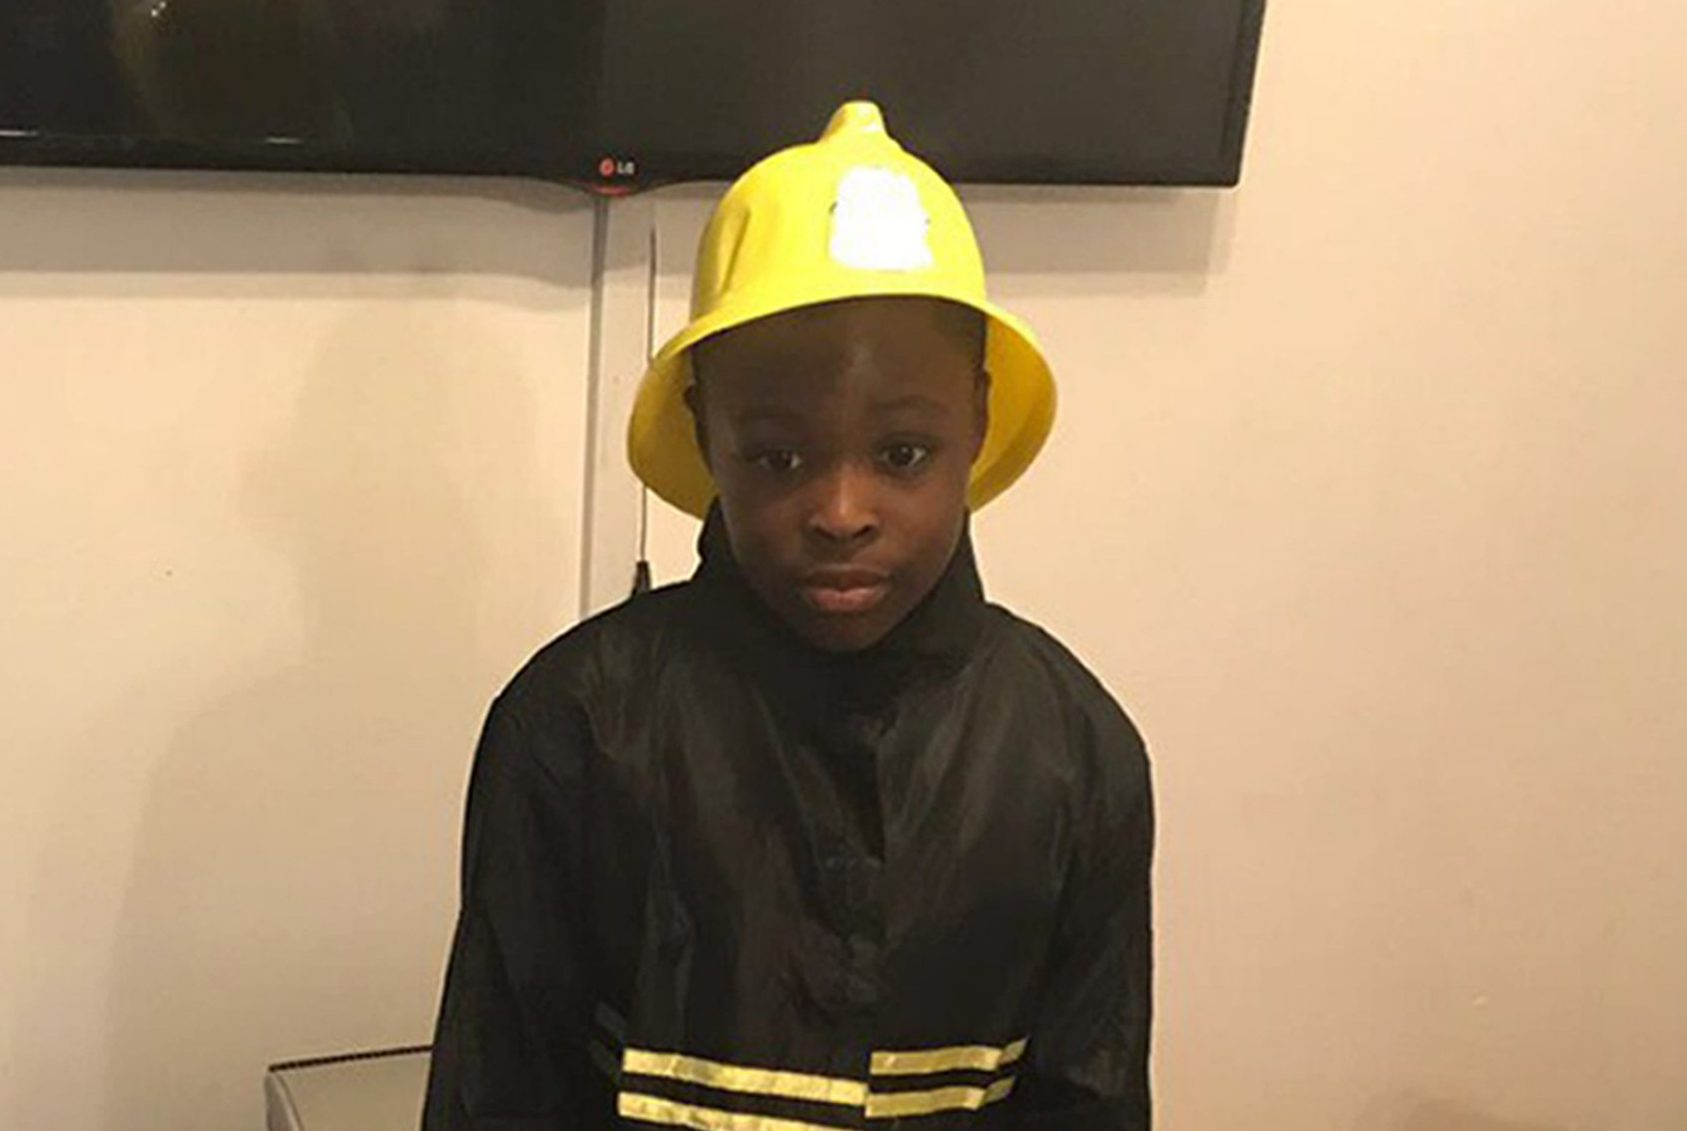 Undated family handout photo of Joel Urhie, released at the scene, who was named by his father, John, as the seven year old boy who died in a house fire on Adolphus Street, Deptford, south-east London. PRESS ASSOCIATION Photo. Issue date: Tuesday August 7, 2018. See PA story FIRE Deptford. Photo credit should read: Family handout/PA Wire NOTE TO EDITORS: This handout photo may only be used in for editorial reporting purposes for the contemporaneous illustration of events, things or the people in the image or facts mentioned in the caption. Reuse of the picture may require further permission from the copyright holder.